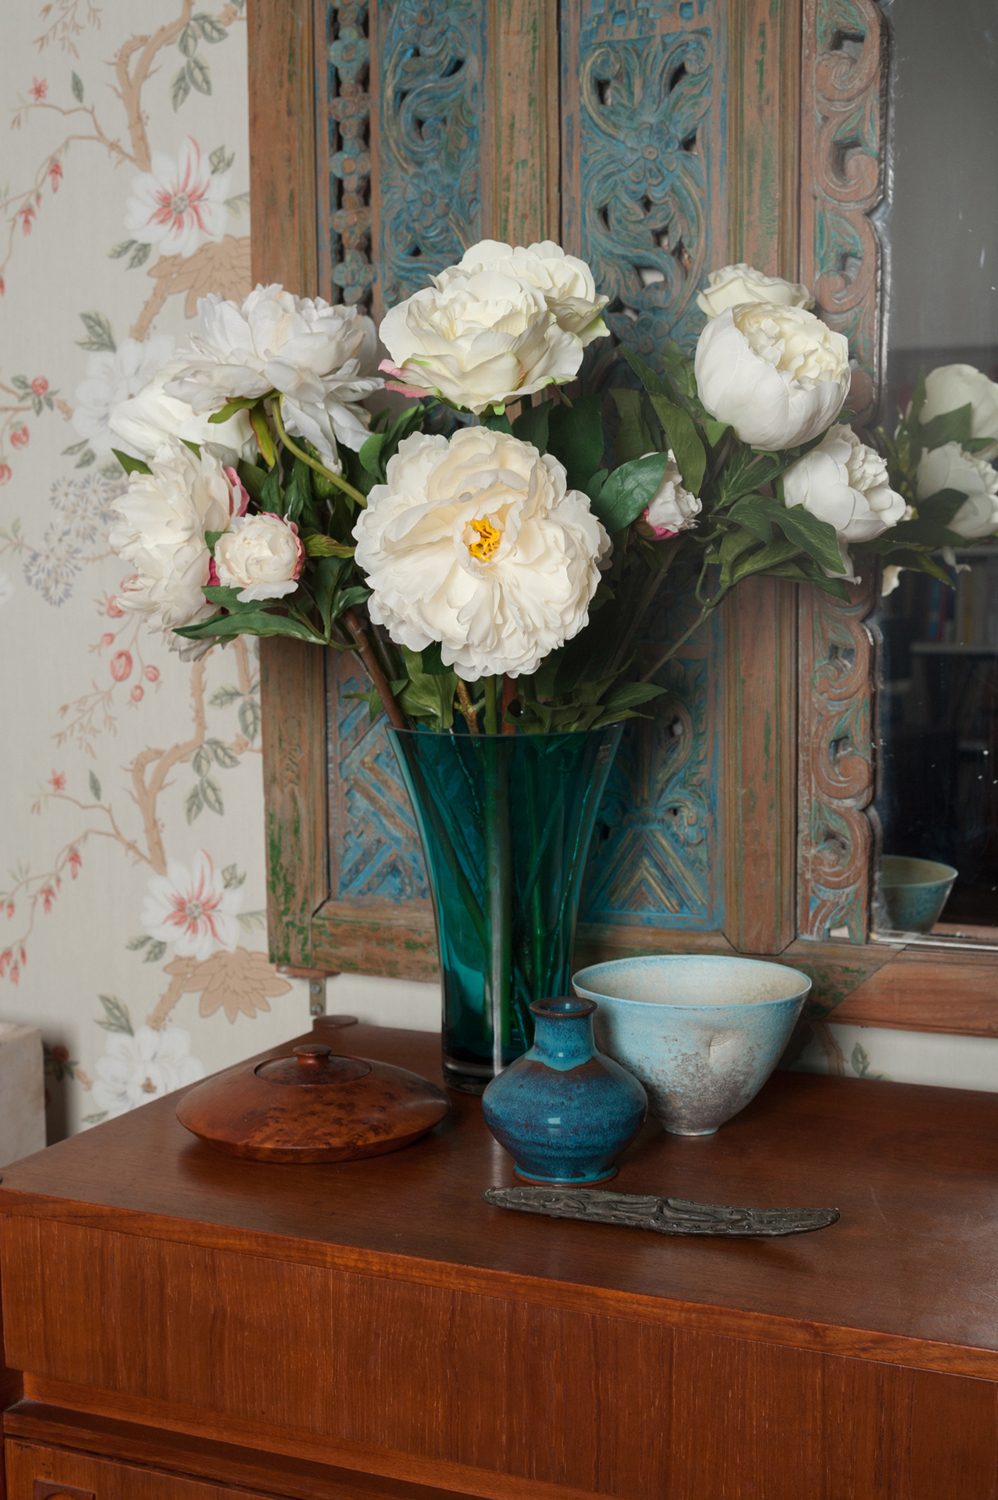 OSH sitting room flowers_alt_LR.jpg